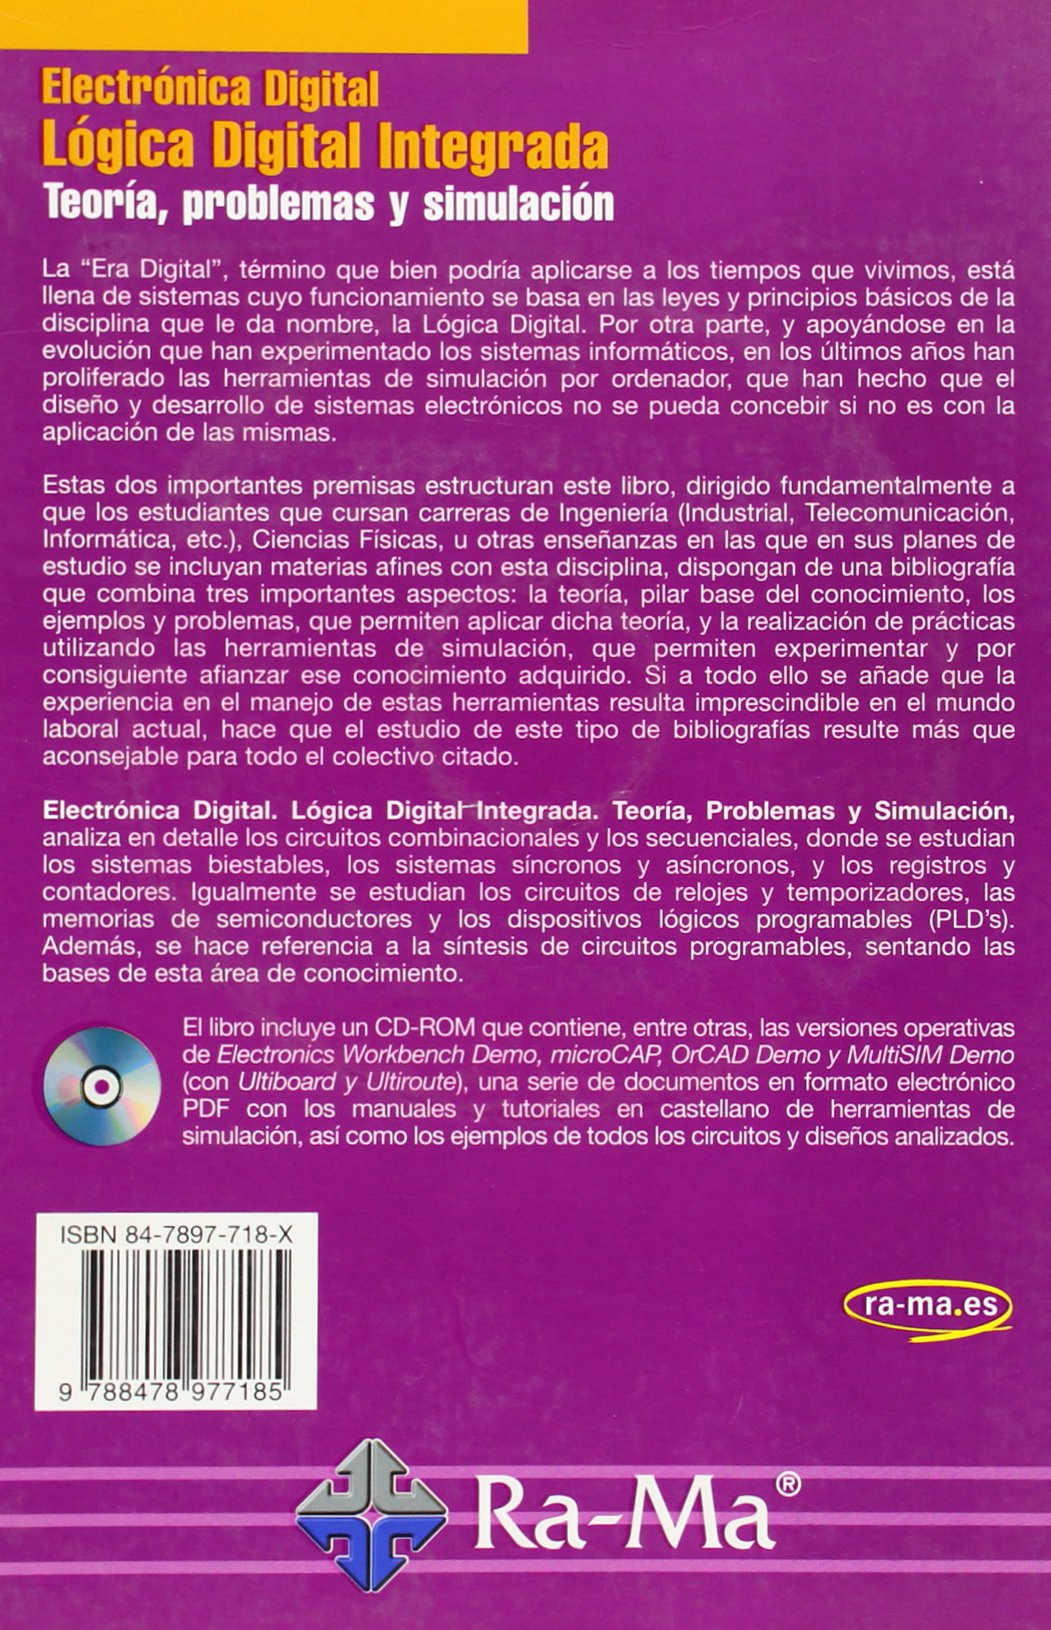 Electrónica Digital: Lógica Digital Integrada. Teoría, problemas y simulación.: 9788478977185: Amazon.com: Books